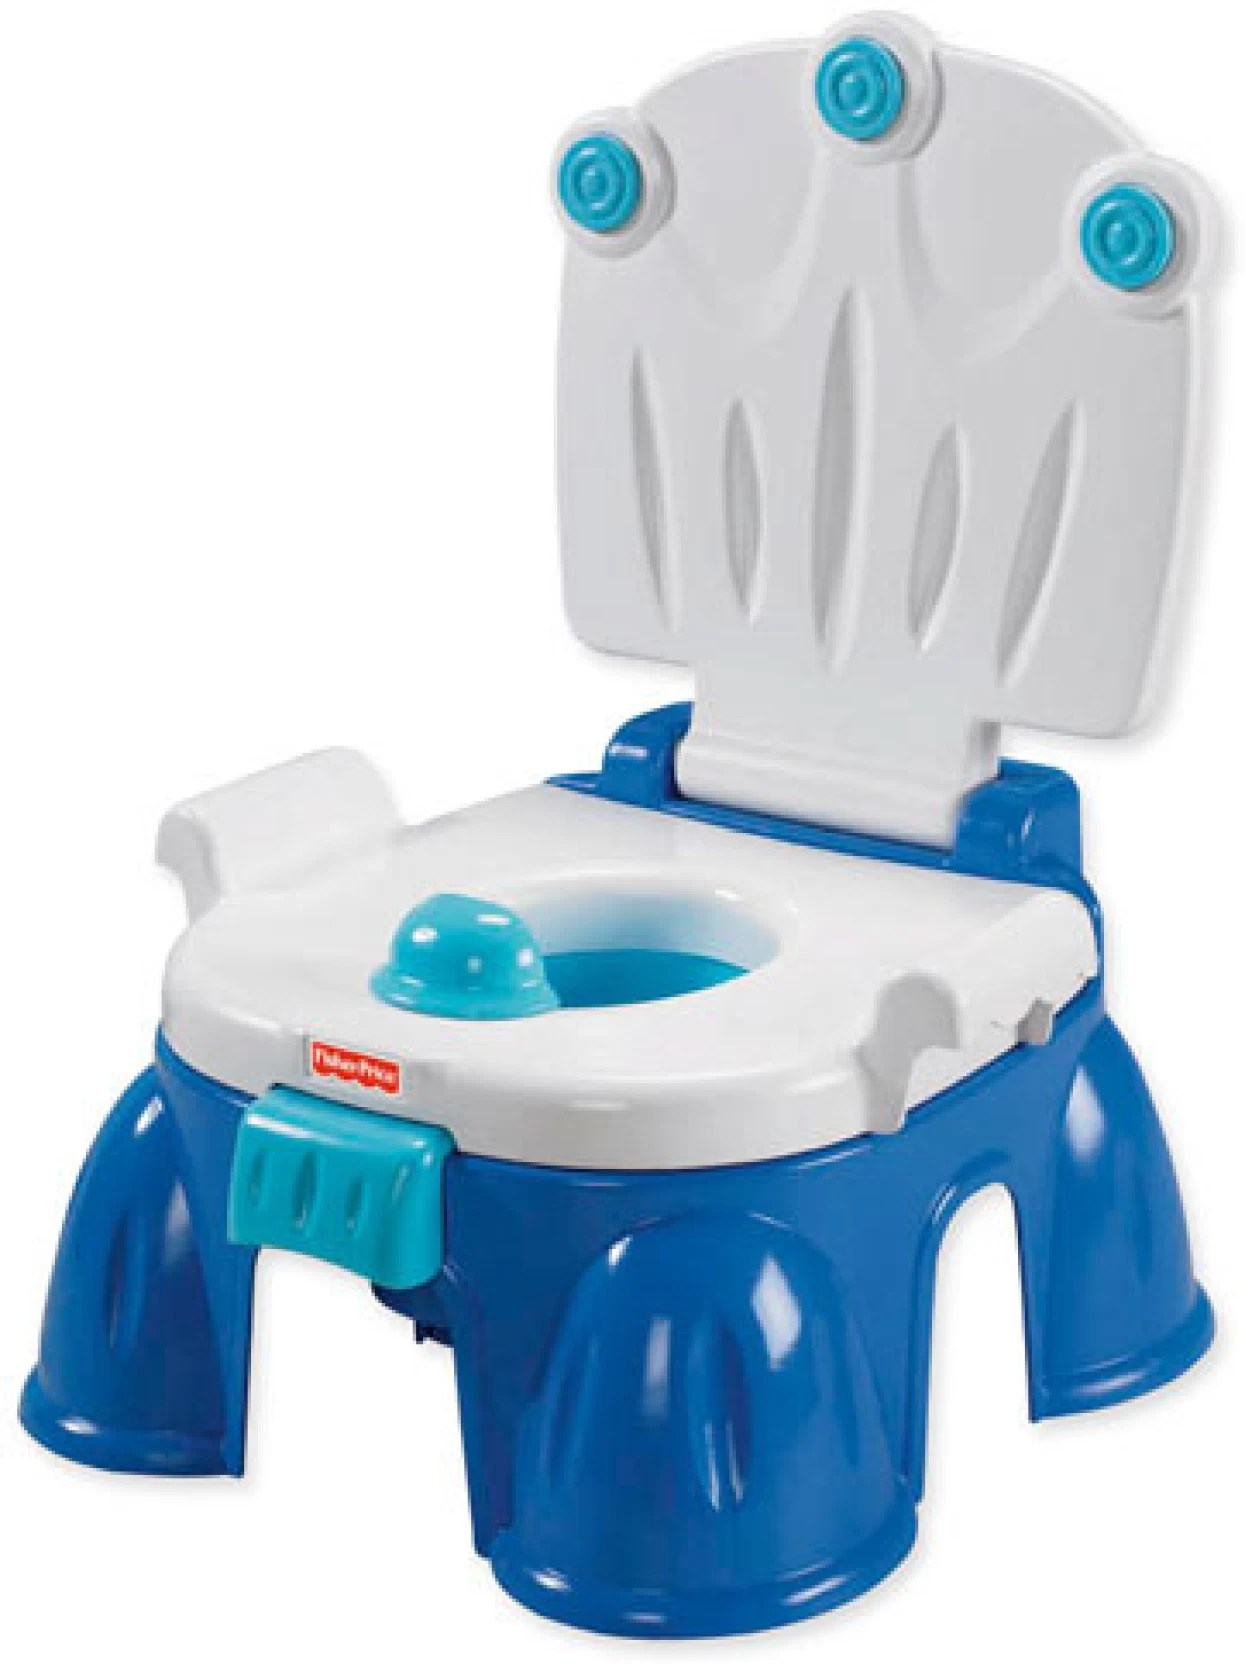 singing potty chair office armrest cushion fisher price royal step stool plastic